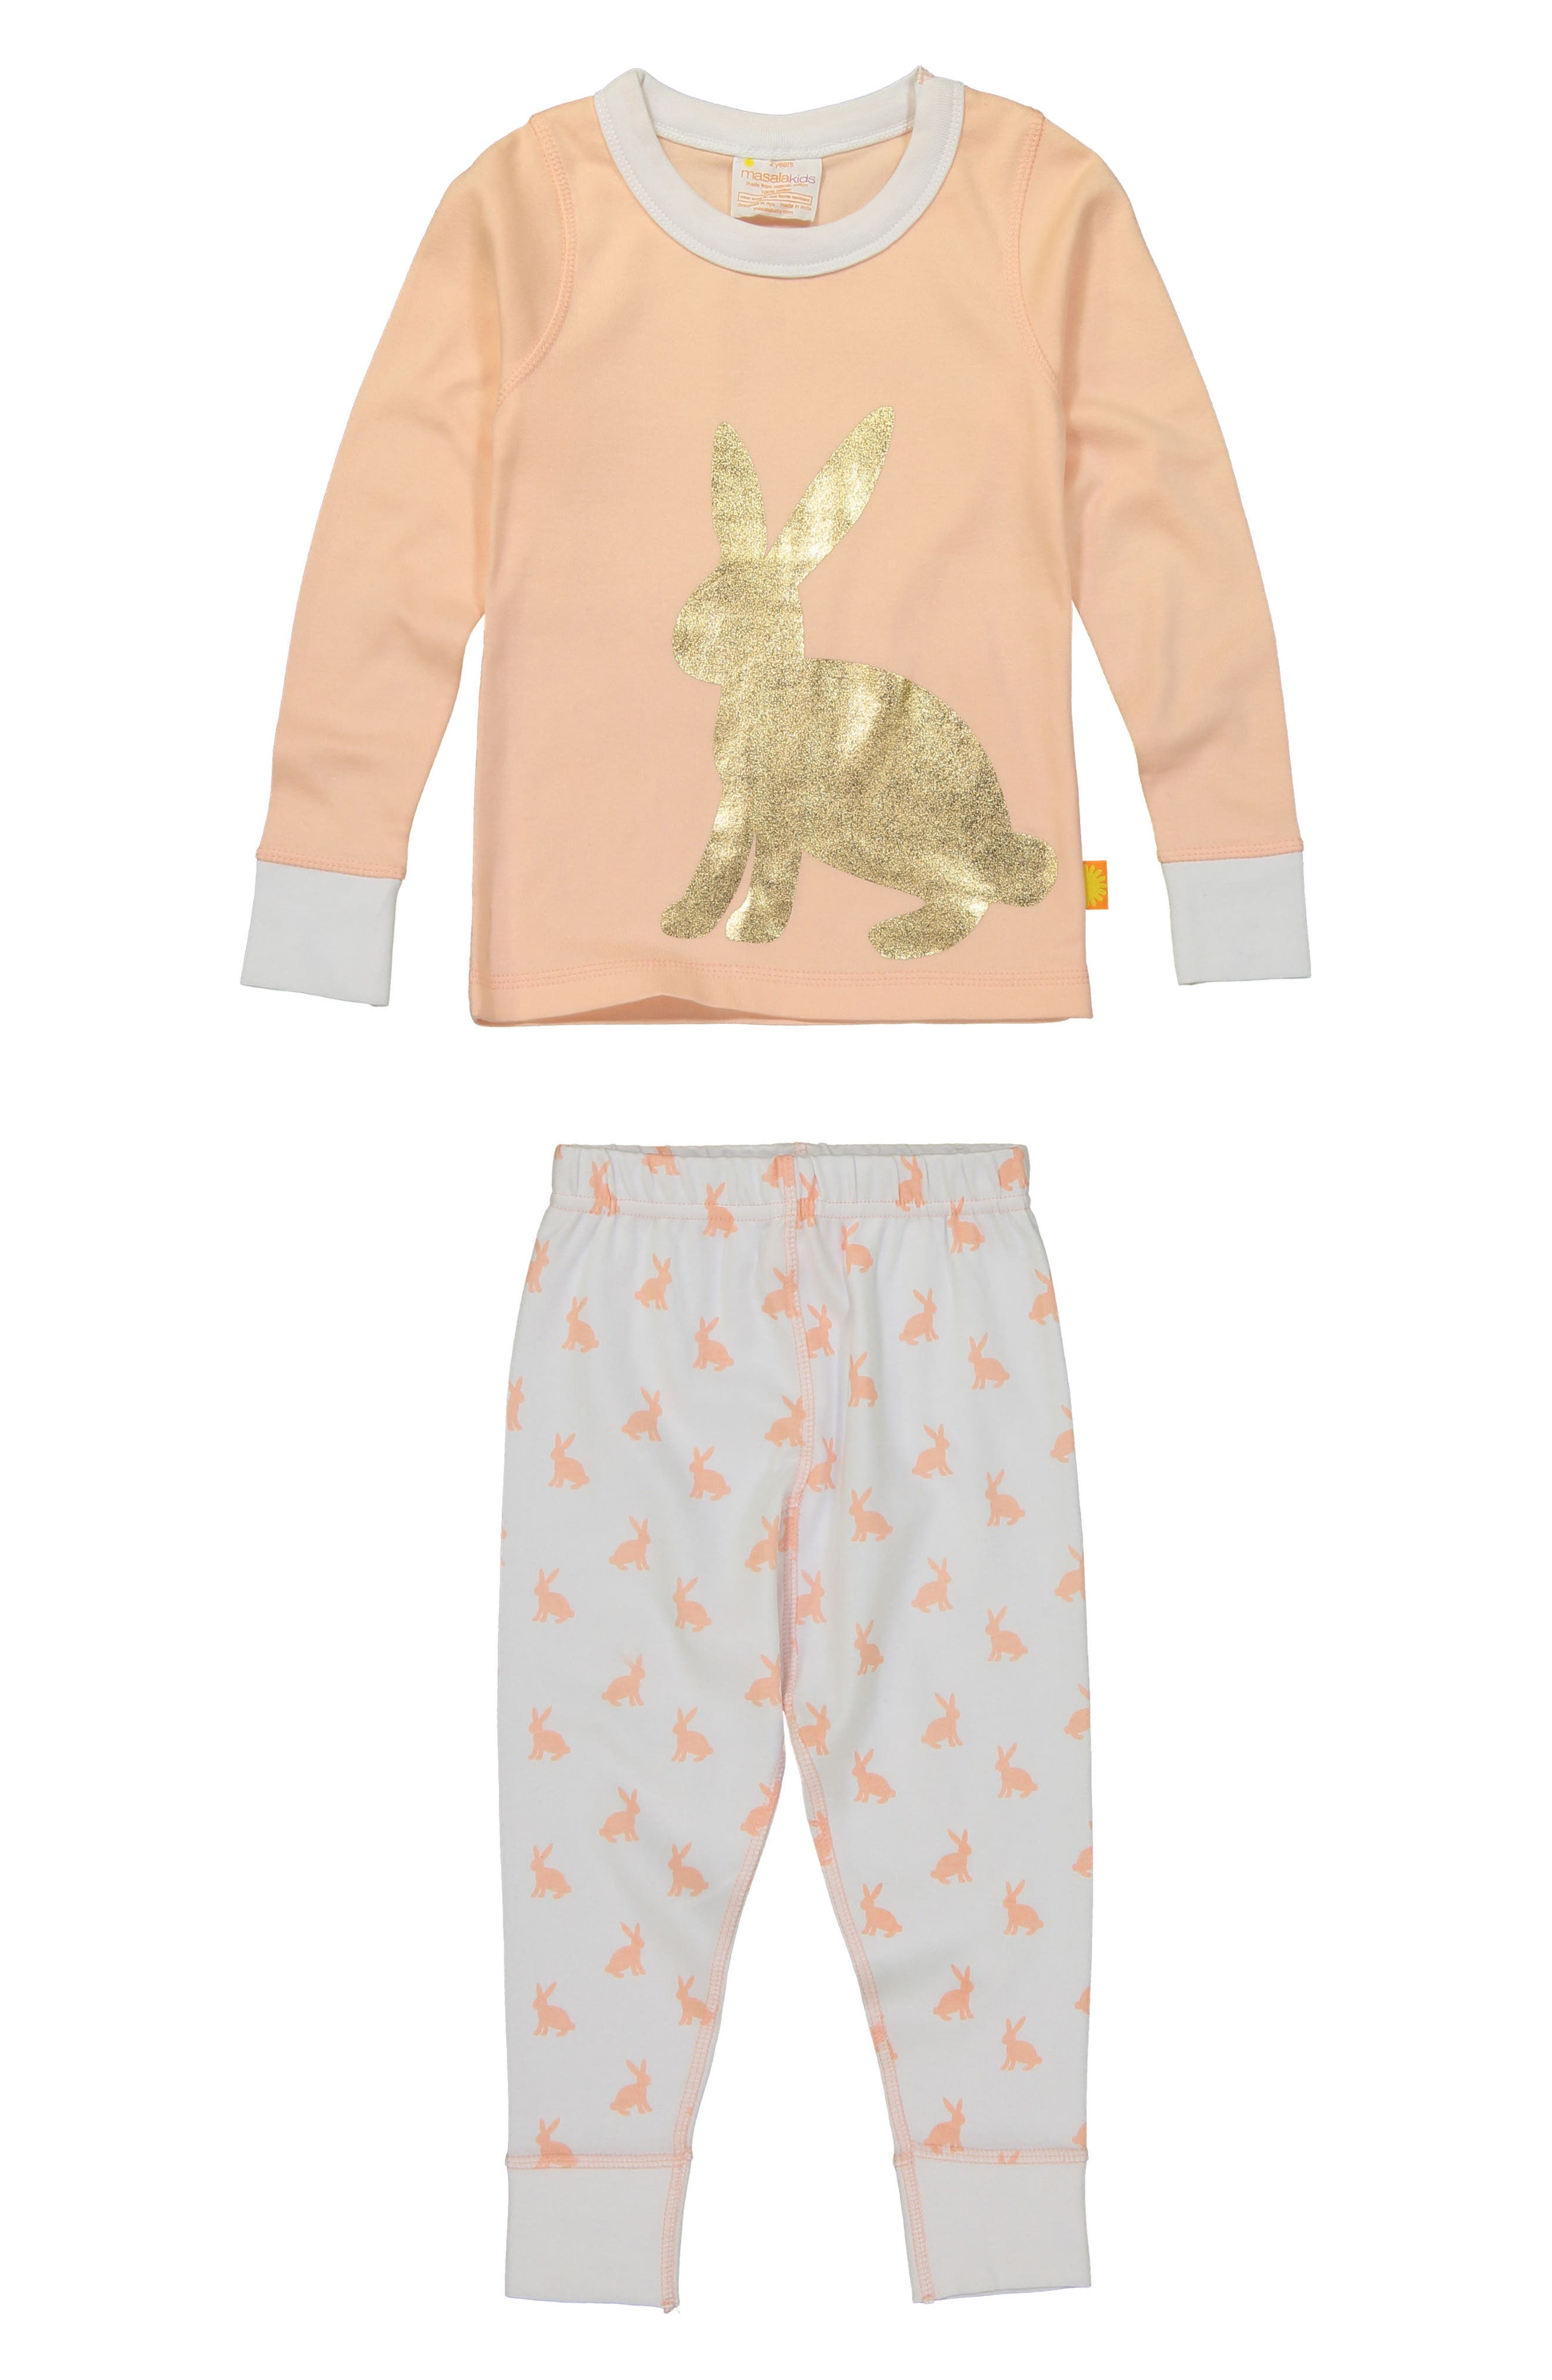 Bunny Hop Fitted Two-Piece Pajamas,                             Main thumbnail 1, color,                             Peach